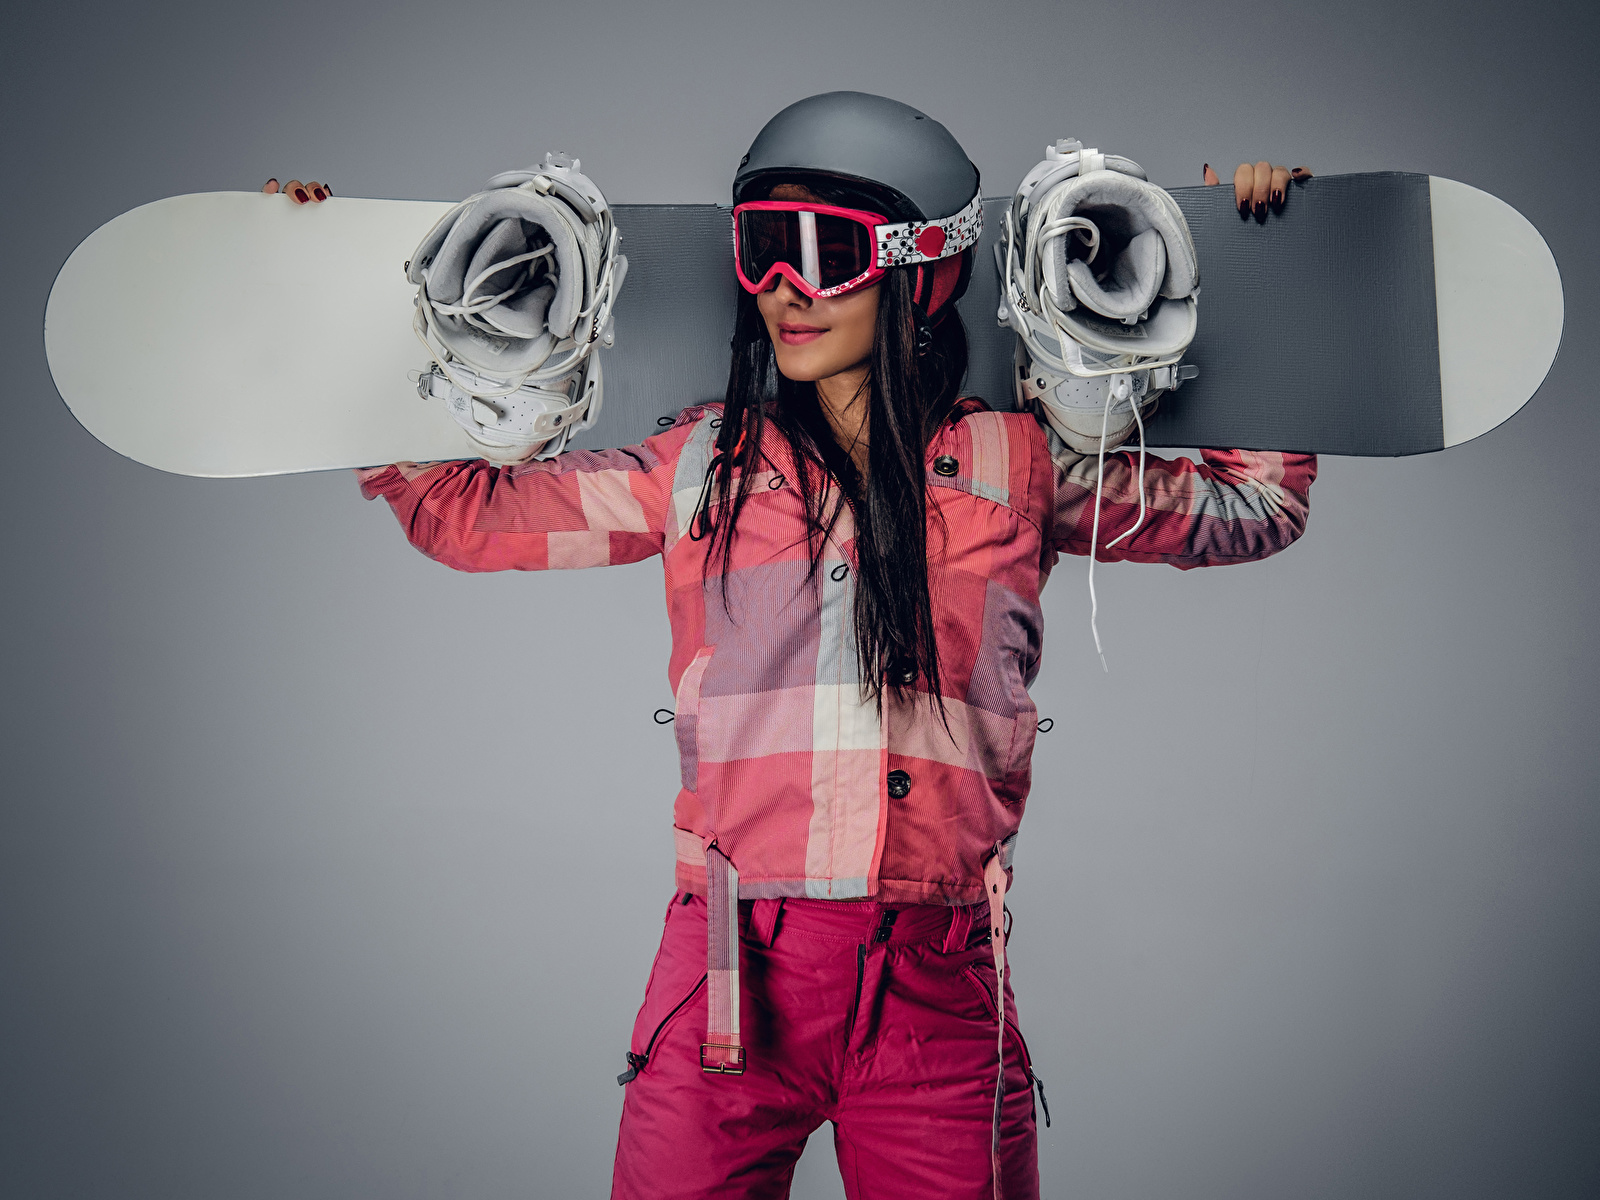 Wallpaper Brown haired Helmet Sport female Snowboarding Glasses Gray background 1600x1200 Girls sports athletic young woman eyeglasses